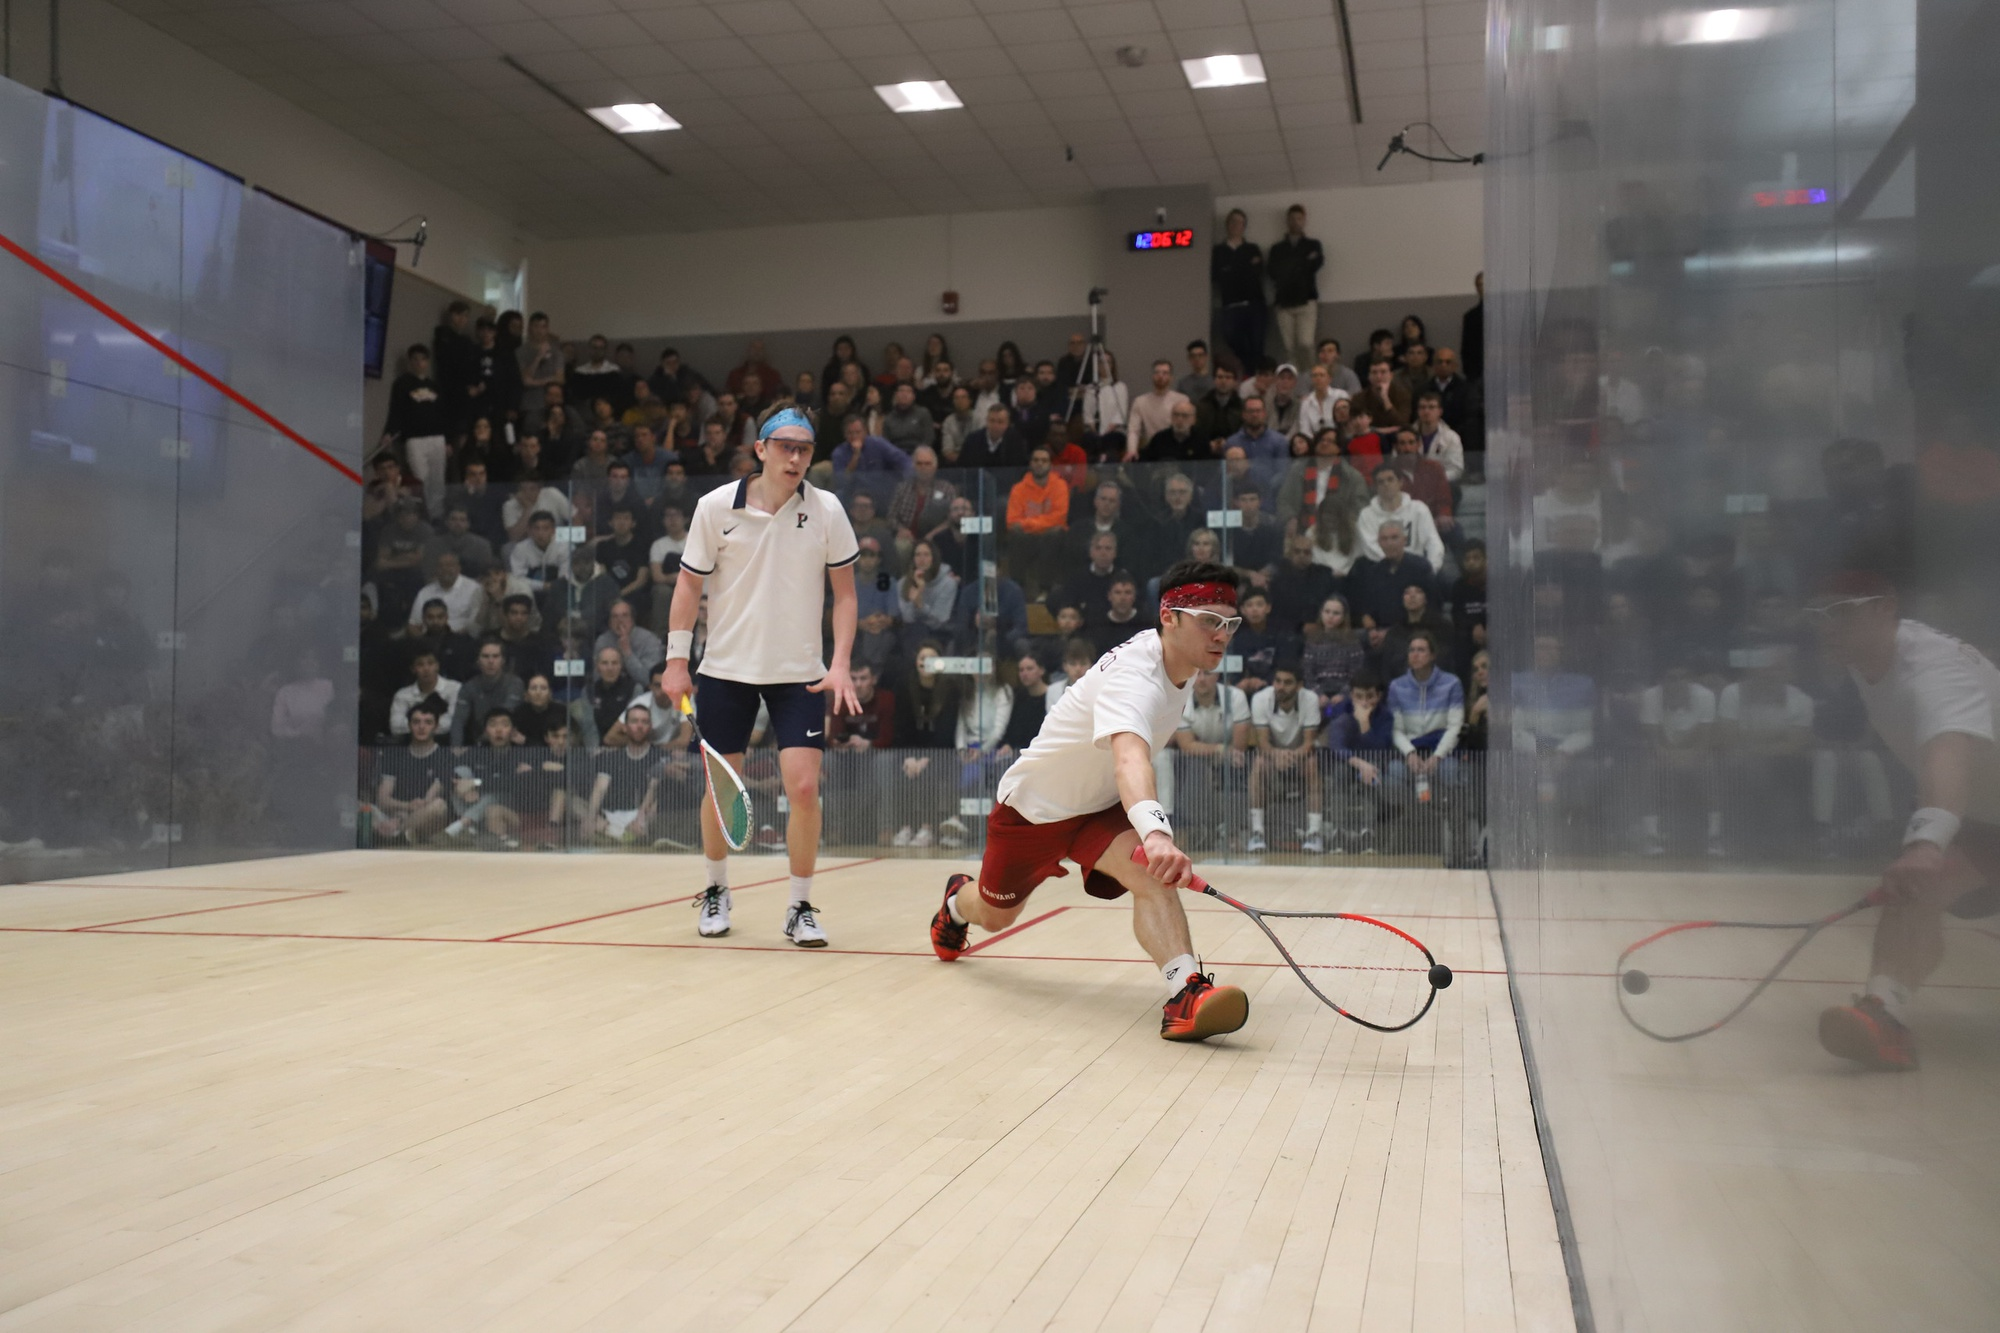 While currently over 3,000 miles away from Harvard, the French native is poised to bring his strong work ethic and talent back to campus. Pictured above, Crouin competes at last year's CSA National Championship, just days before the March 10, 2020, shutdown.